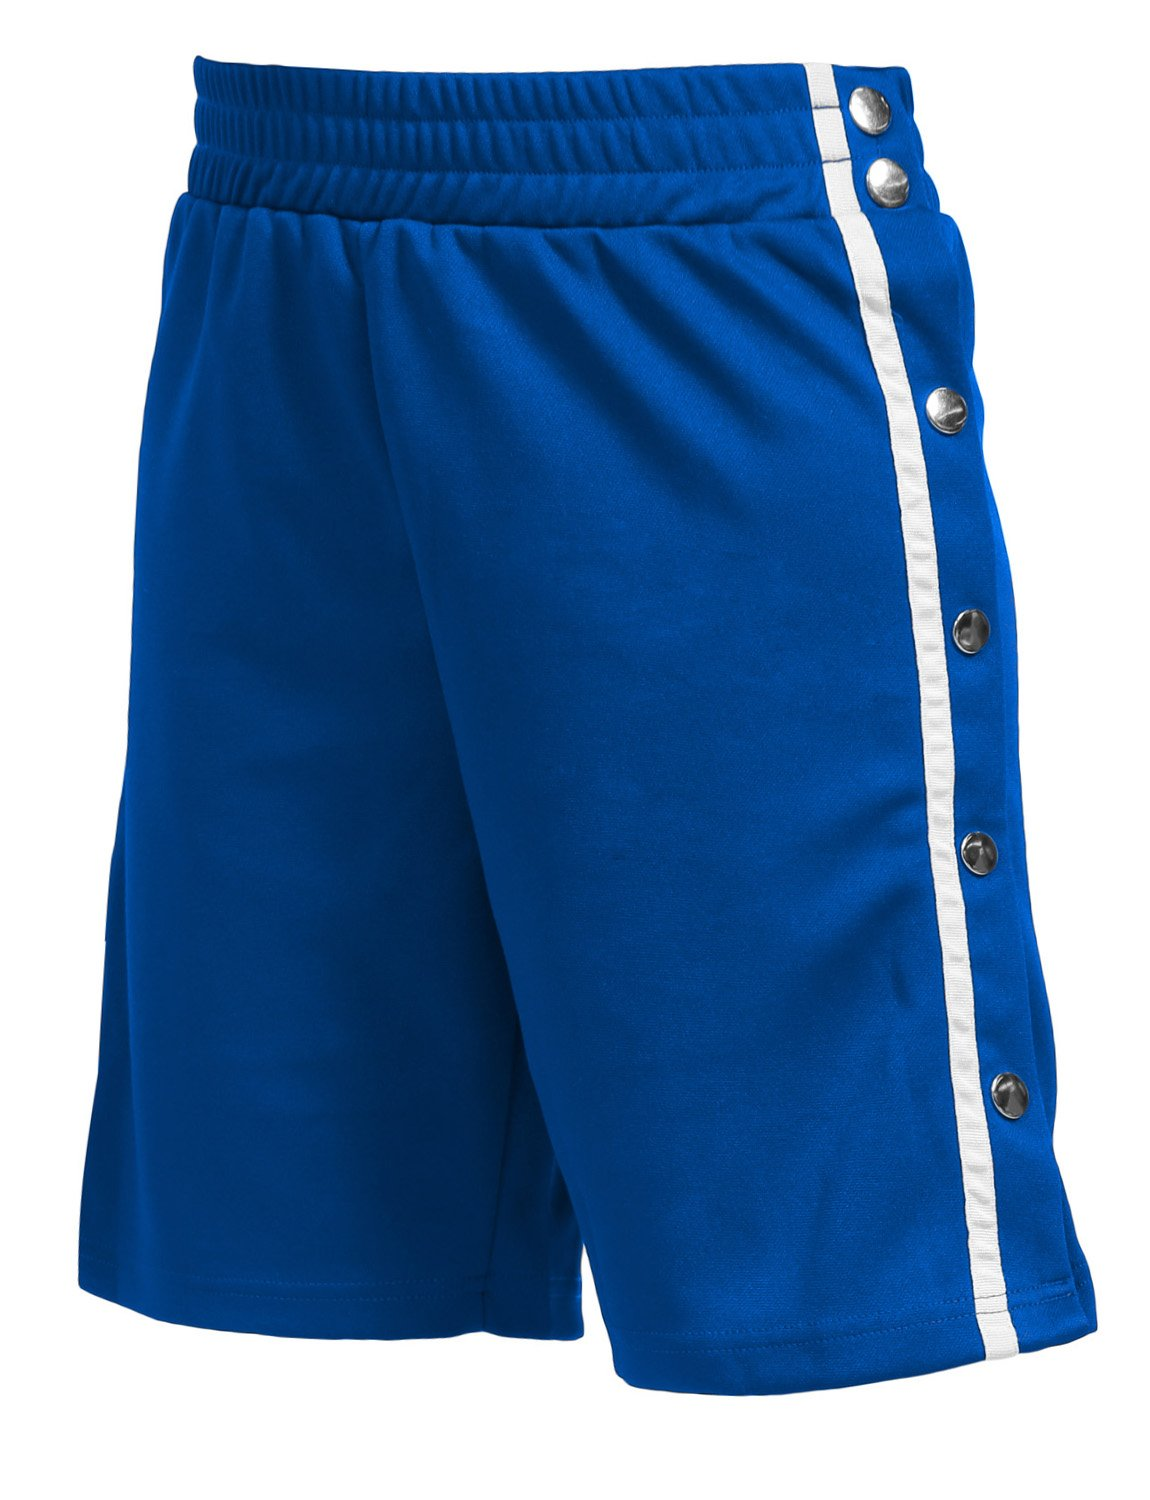 J. LOVNY Womens Simple Elastic Side Snap Button on Track Shorts Wide Leg Pants